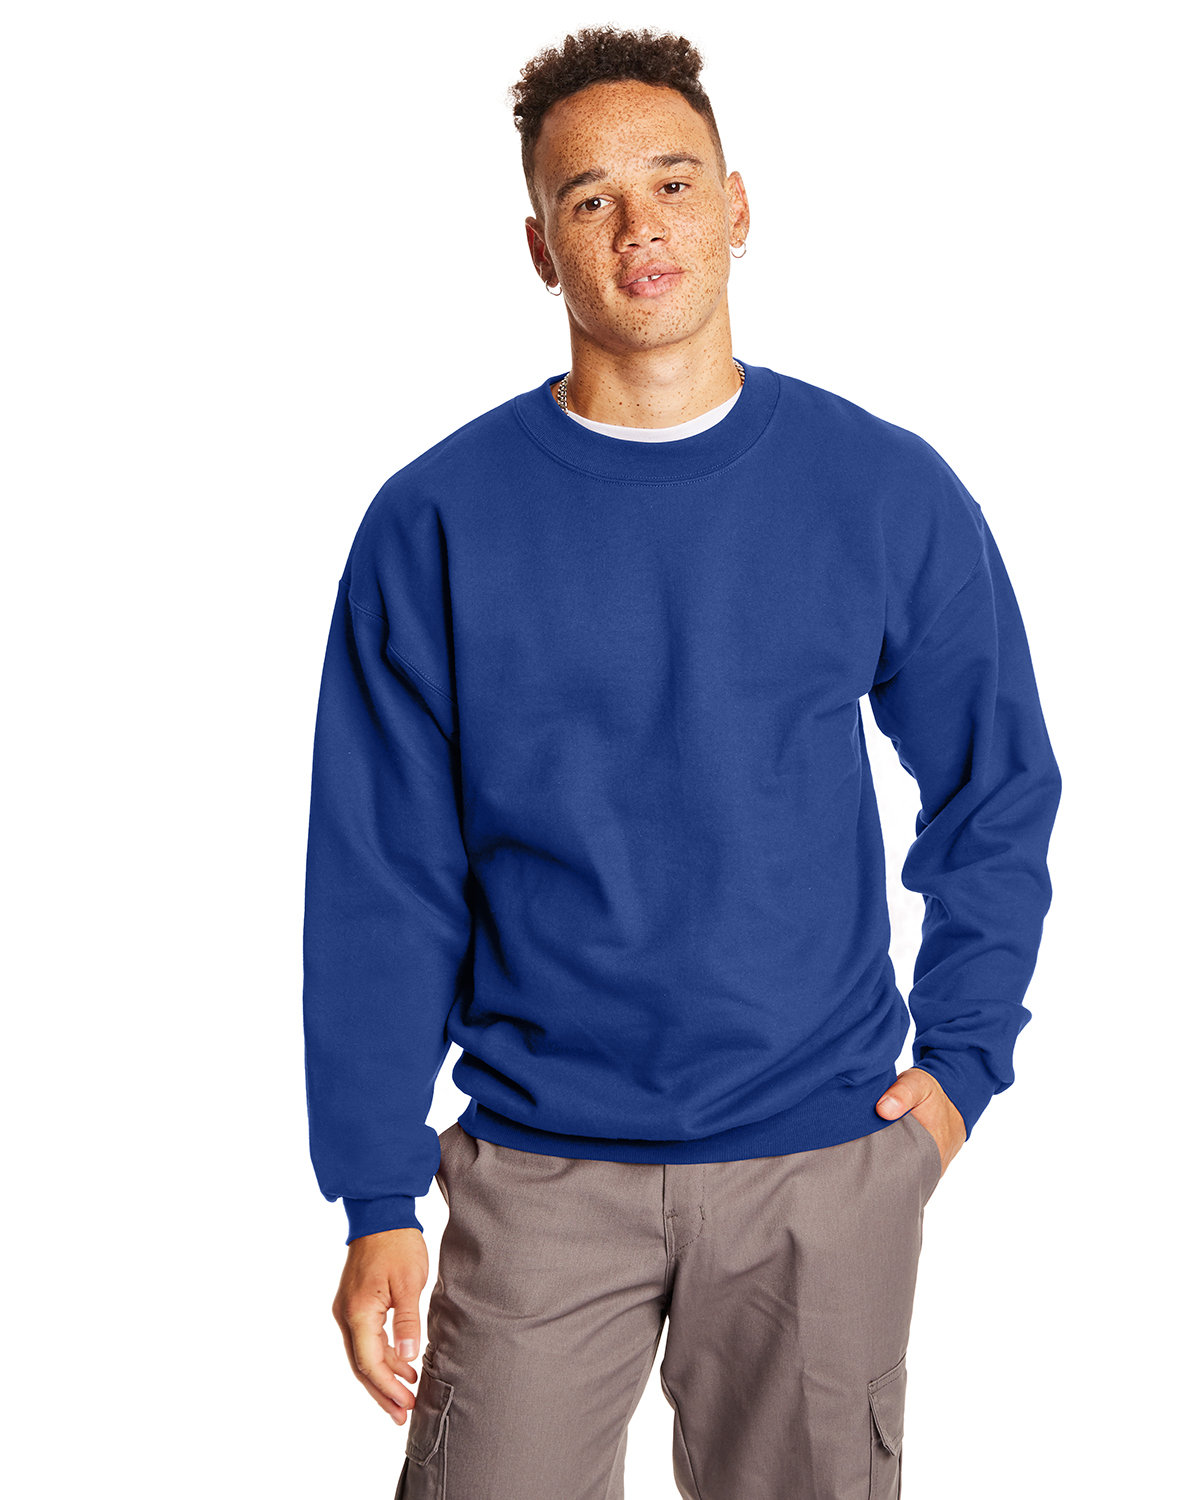 Hanes Adult Ultimate Cotton® 90/10 Fleece Crew DEEP ROYAL